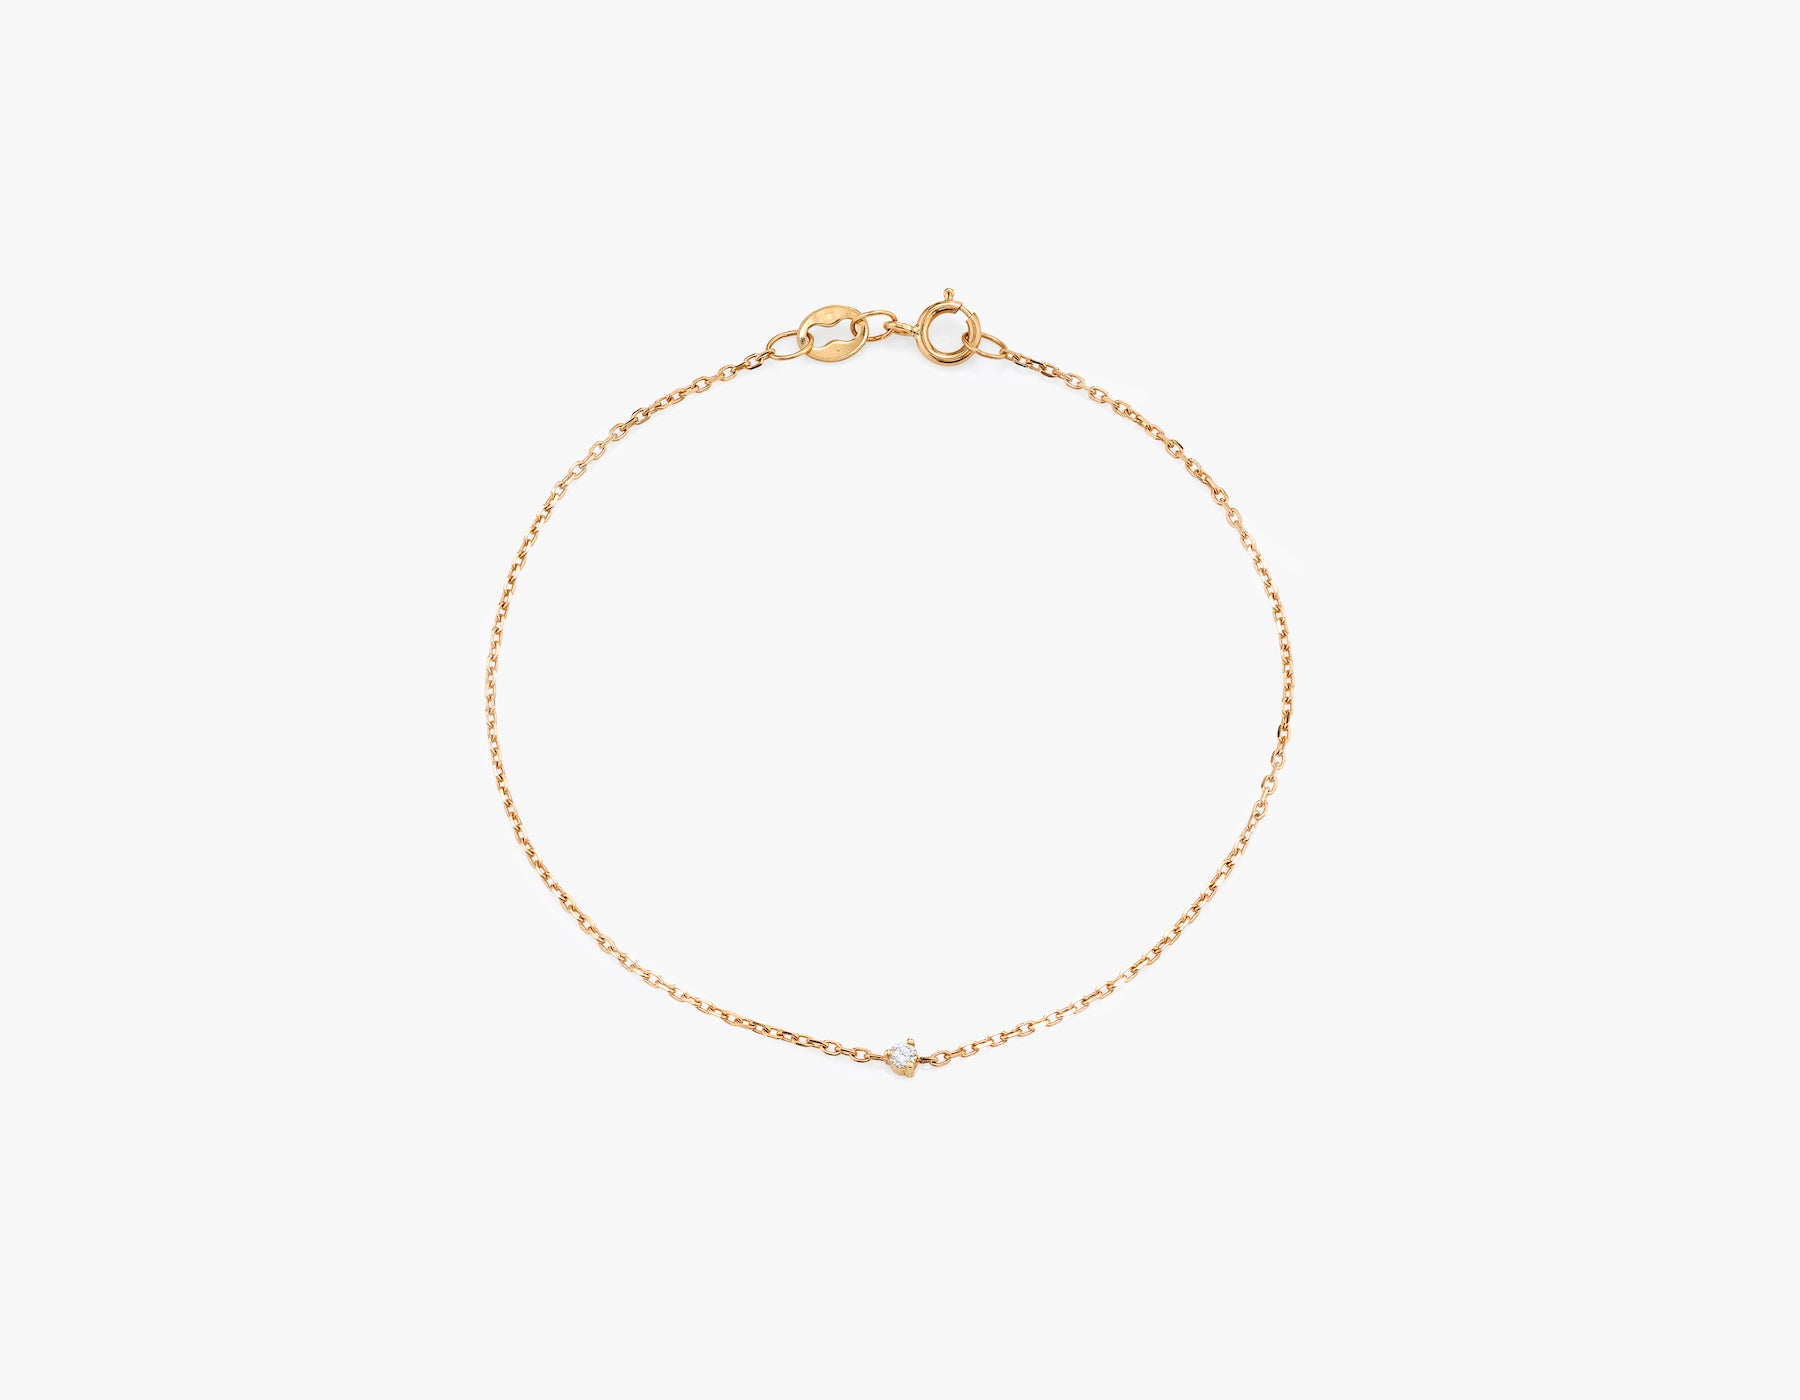 Vrai 14k Solid gold dainty Tiny Diamond Bracelet with spring ring clasp, 14K Rose Gold